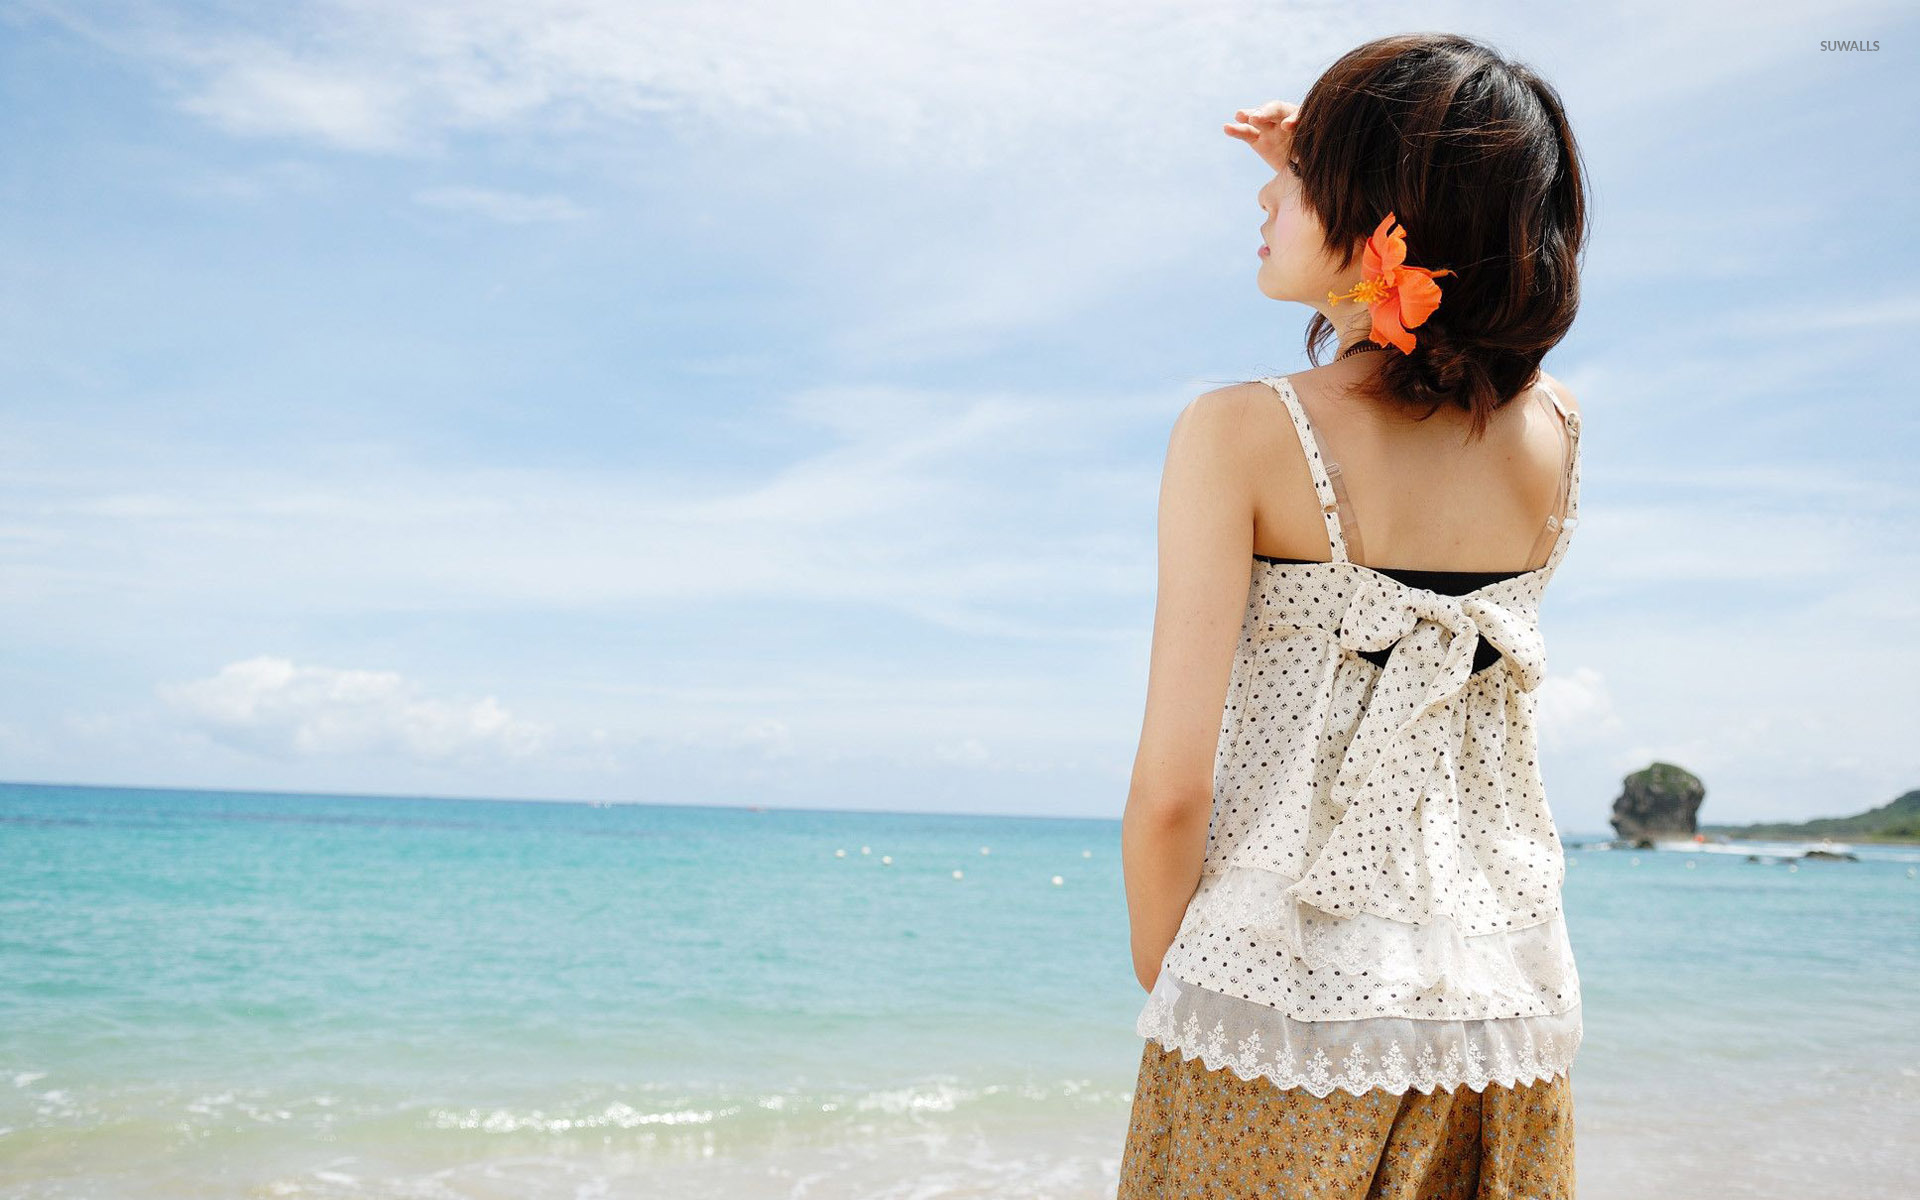 Asian Girl At The Beach Wallpaper Girl Wallpapers 28902